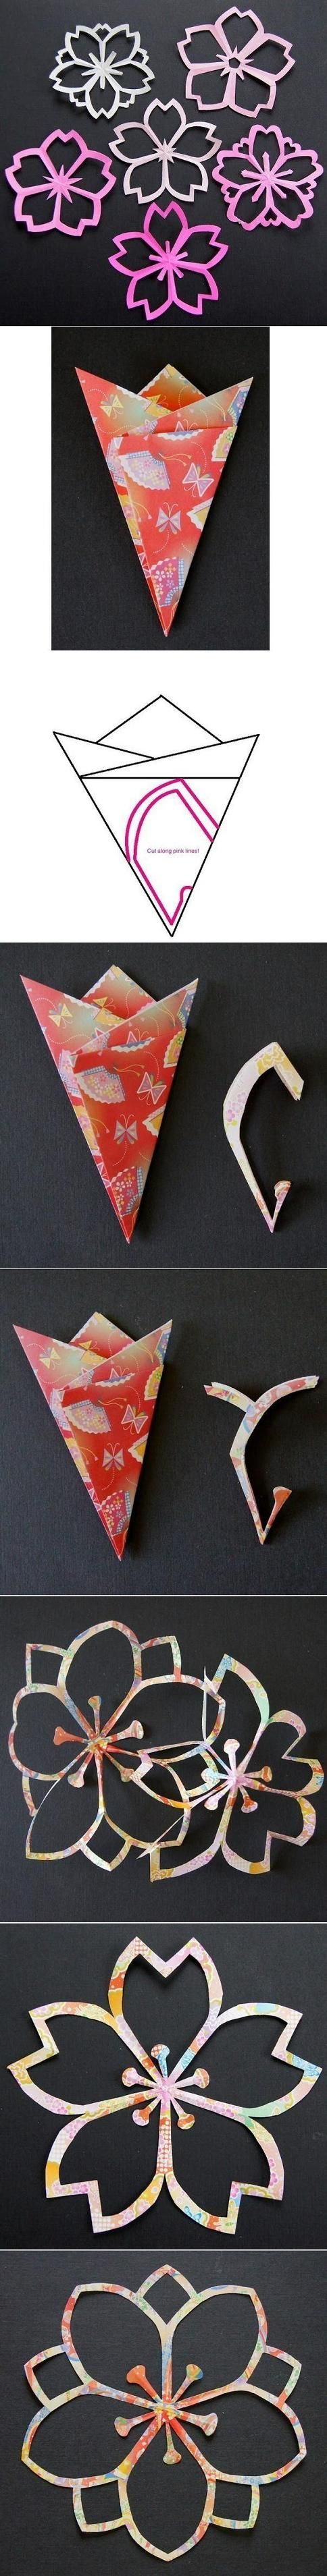 DIY Flower Paper Cutting